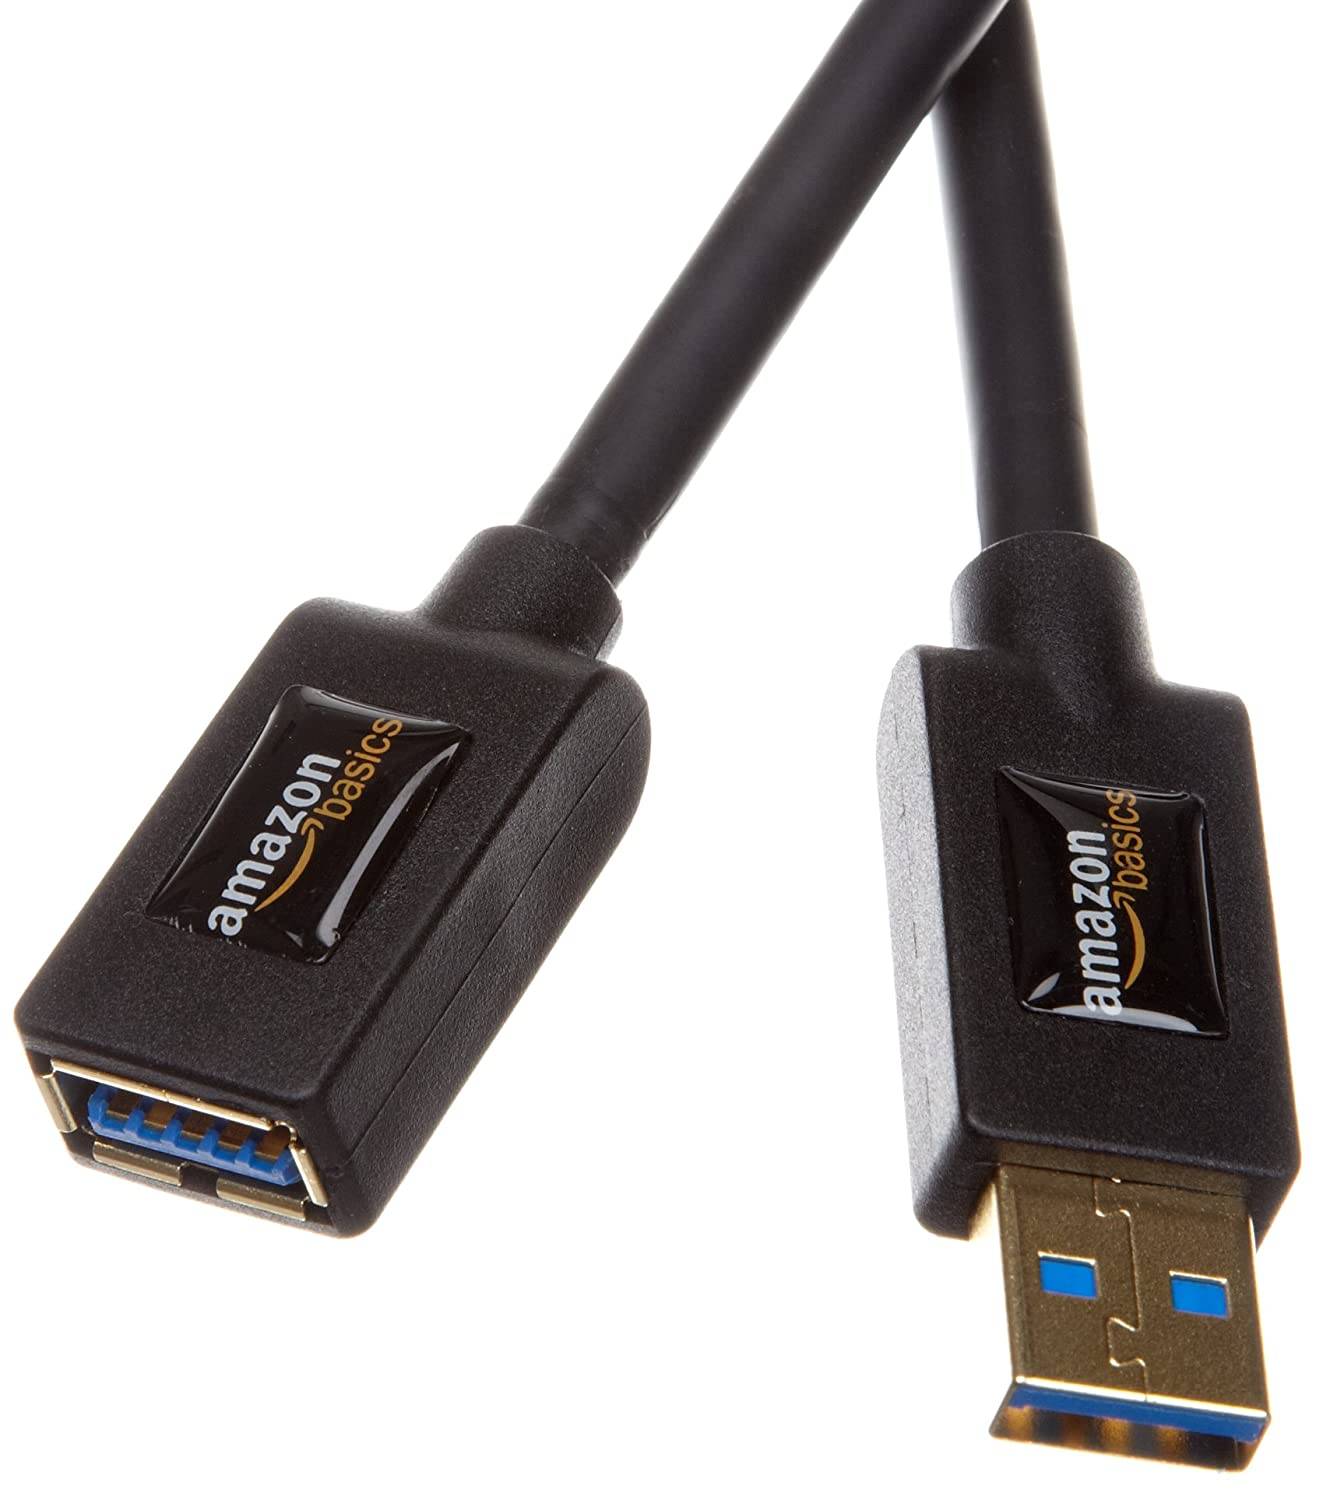 AmazonBasics USB 3.0 Extension Cable - A-Male to A-Female - 9.8 Feet (3.0 Meters)